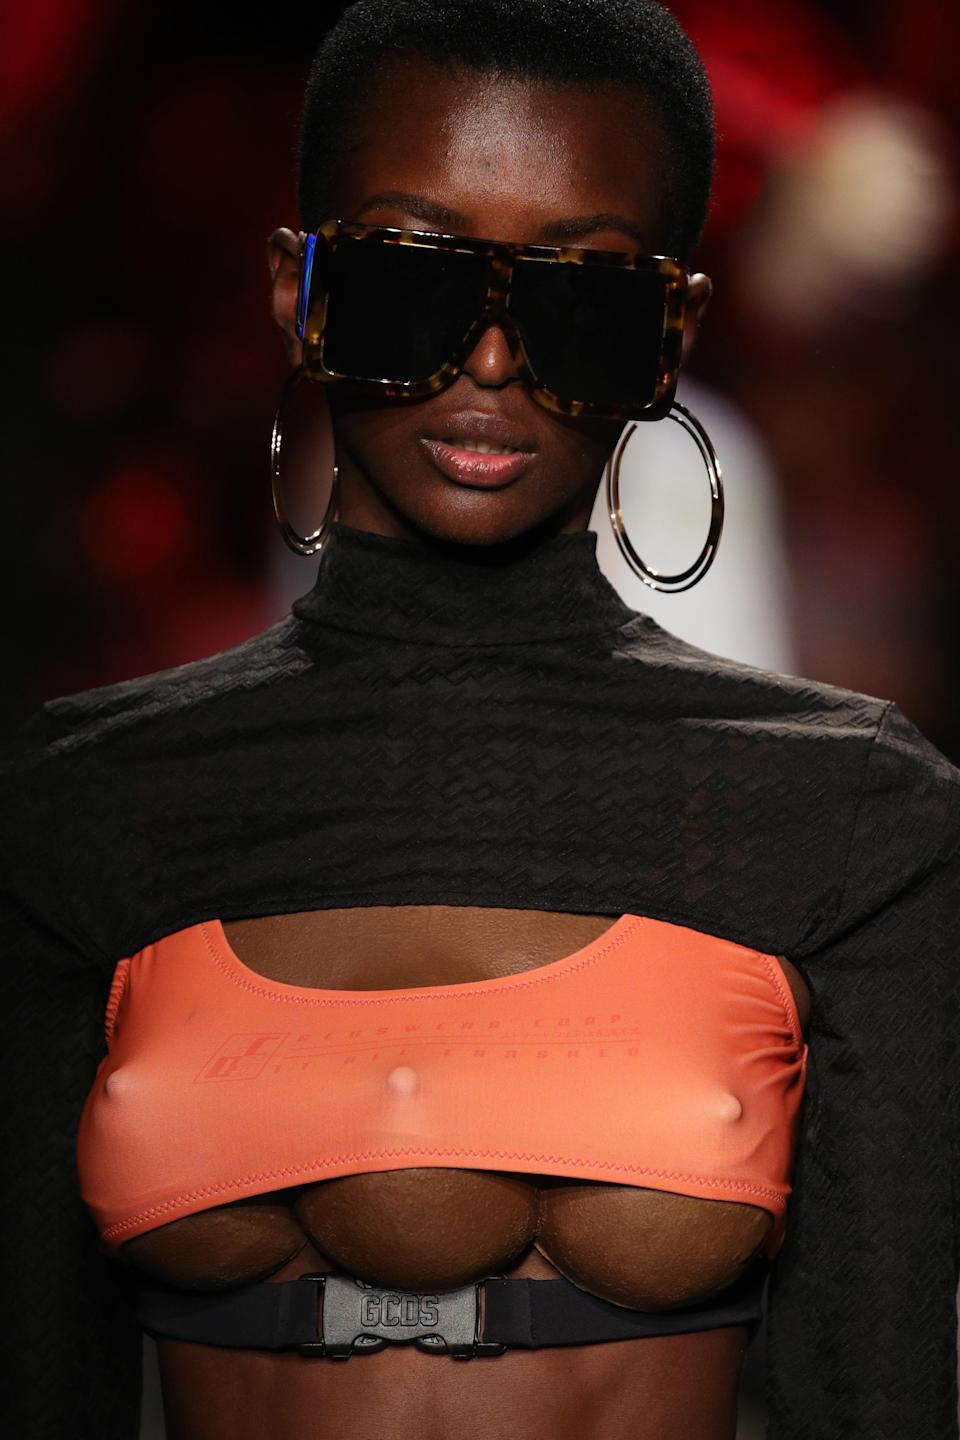 Italian fashion brand GCDS offered up some triple-breasted threats in its fashion show. (Photo: Getty Images)